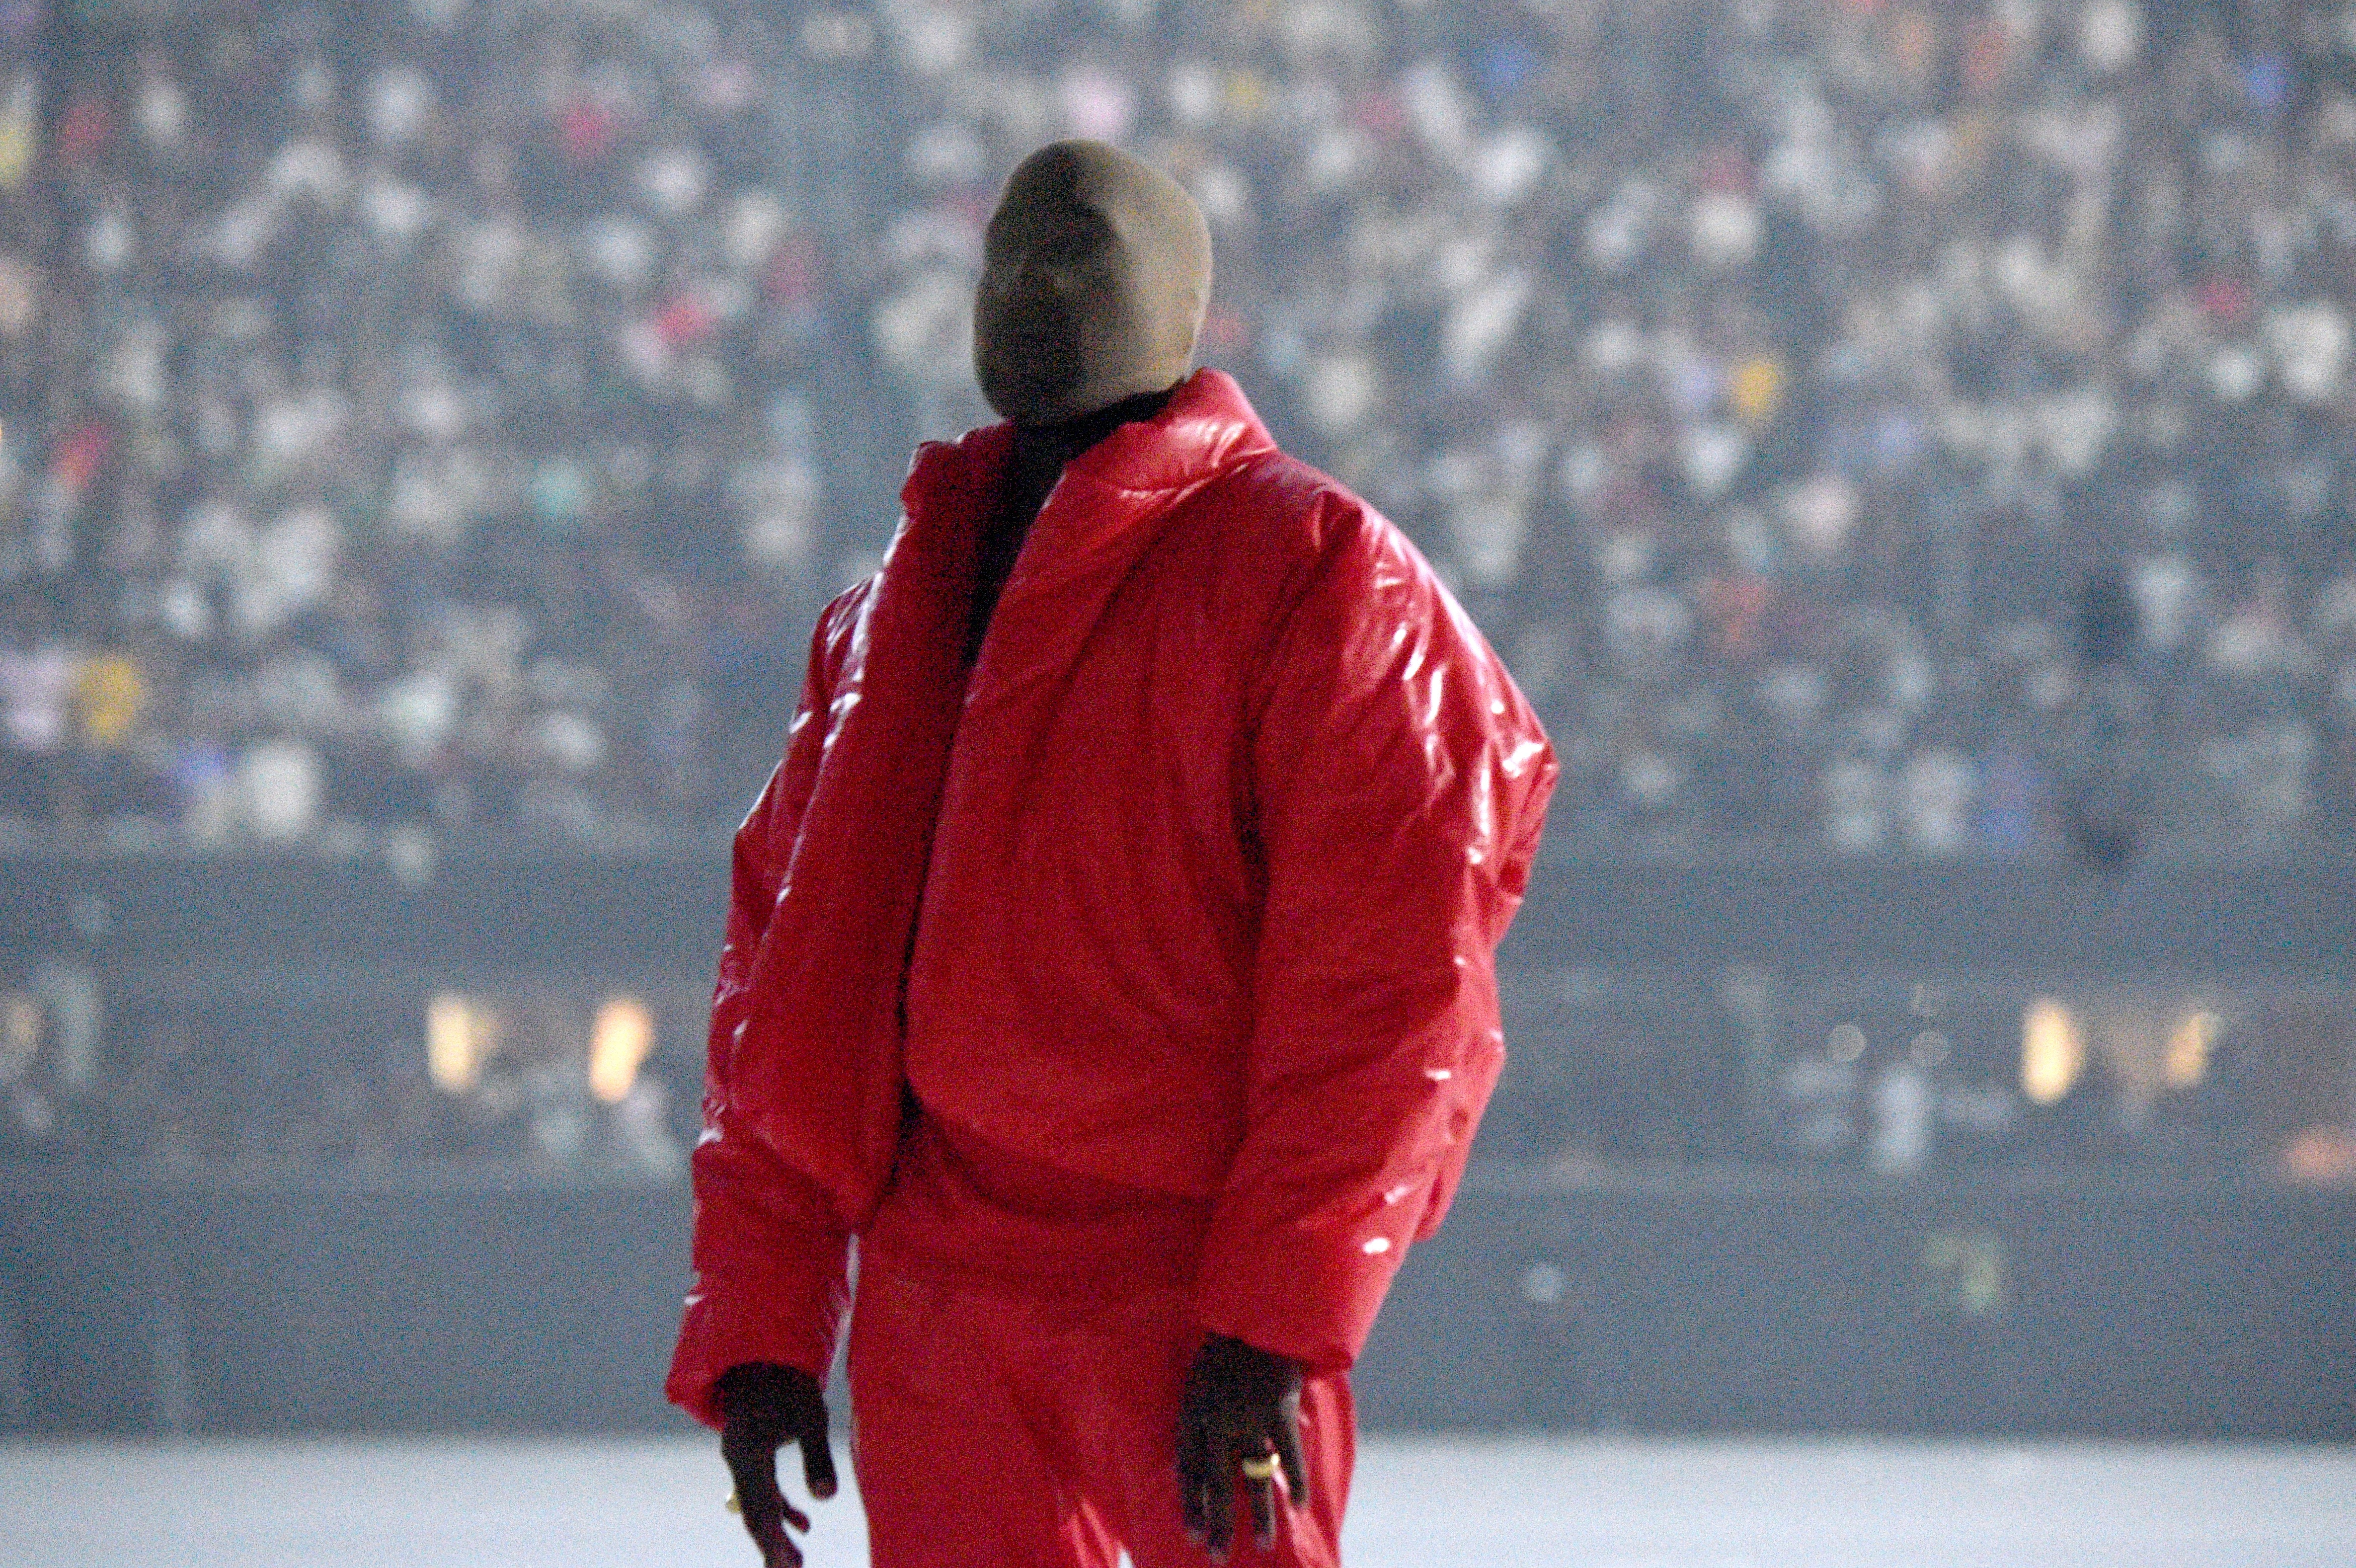 donda-watch,-day-14:-is-kanye-finishing-his-new-album-in-the-basement-of-a-football-stadium?